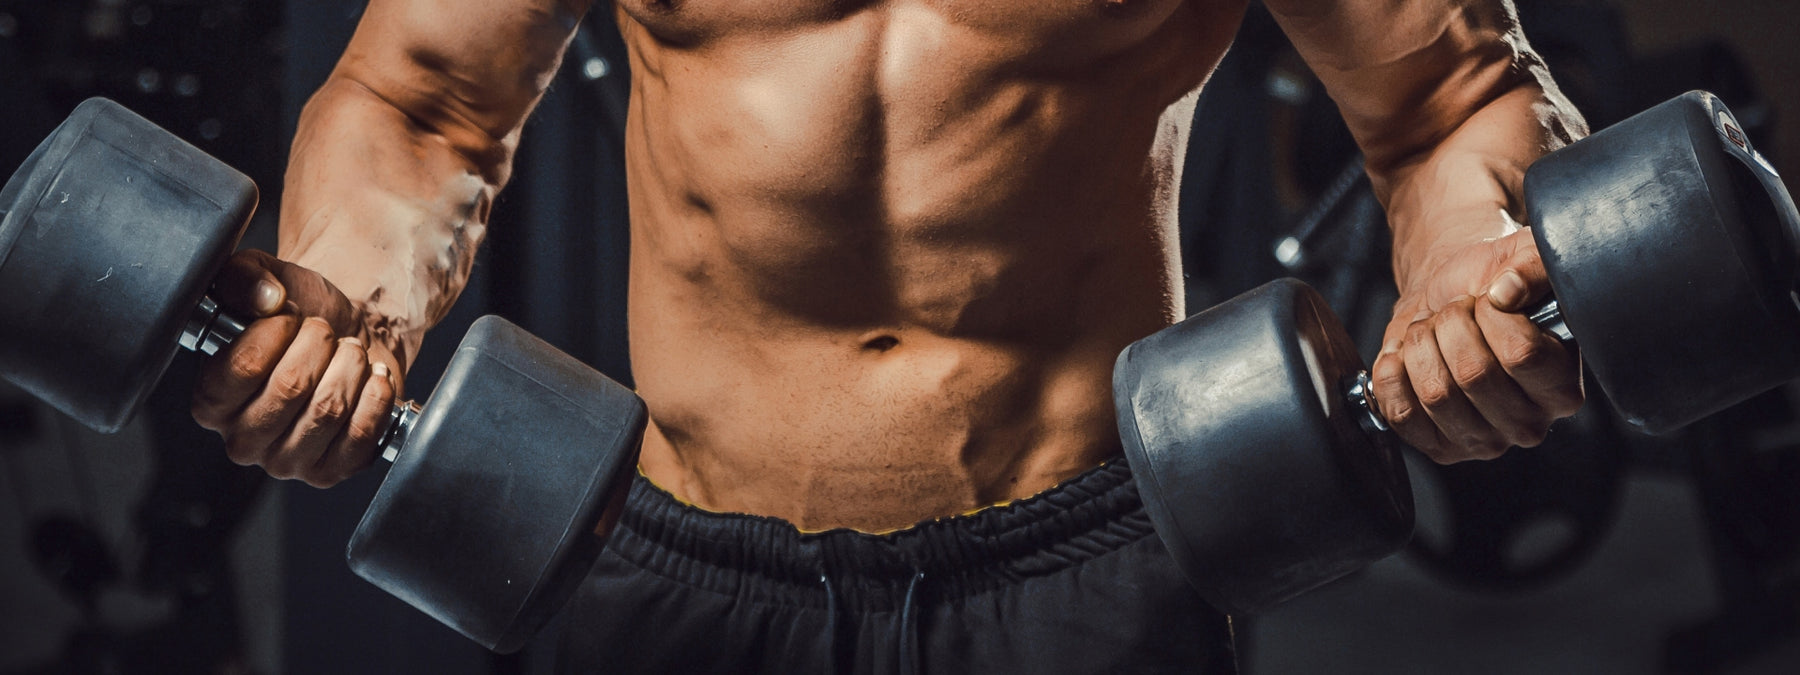 3 Day Full Body Dumbbell Workout Plan